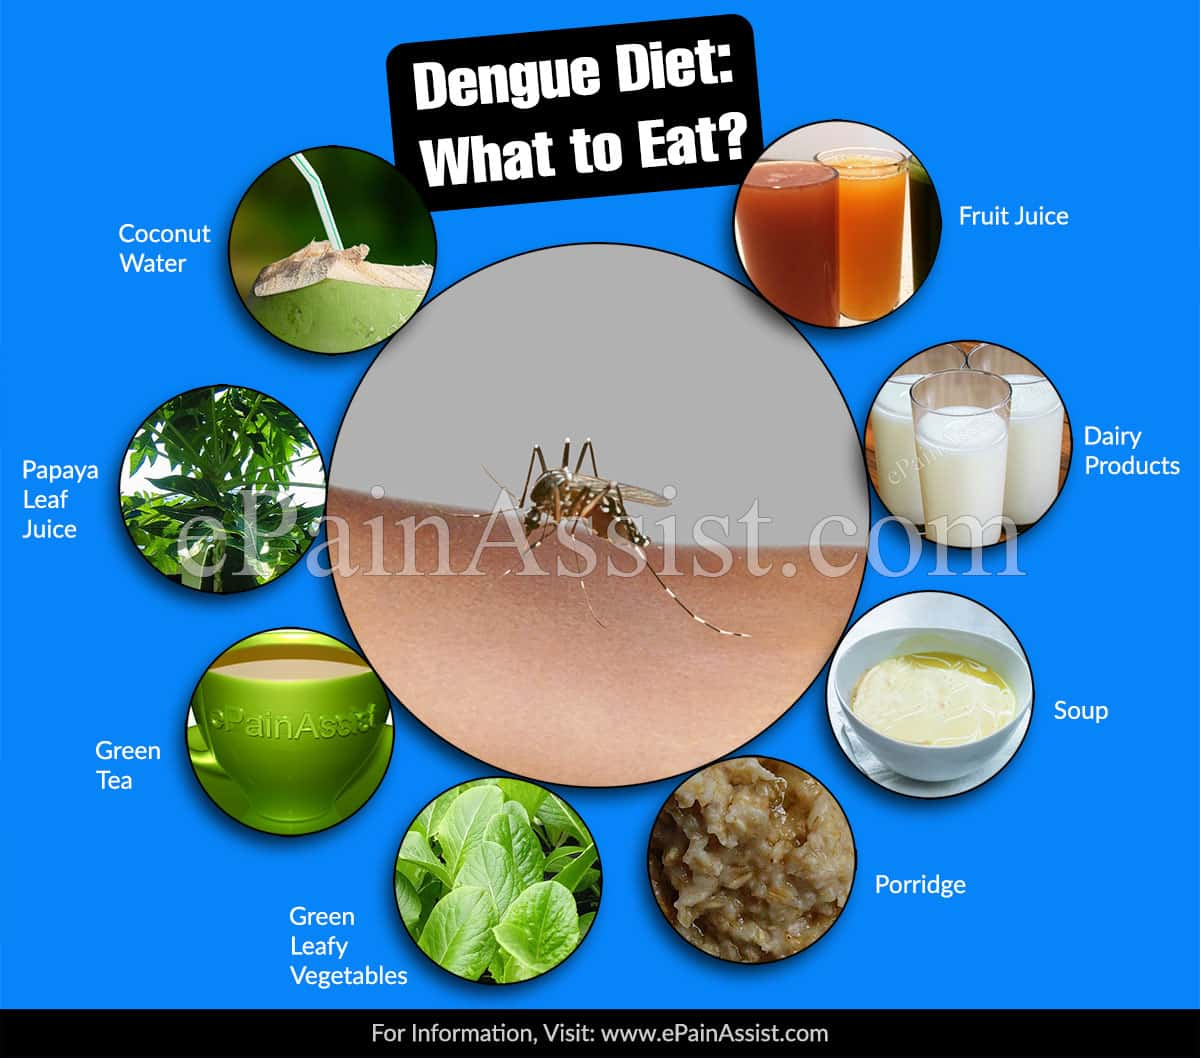 Dengue Diet: What to Eat?